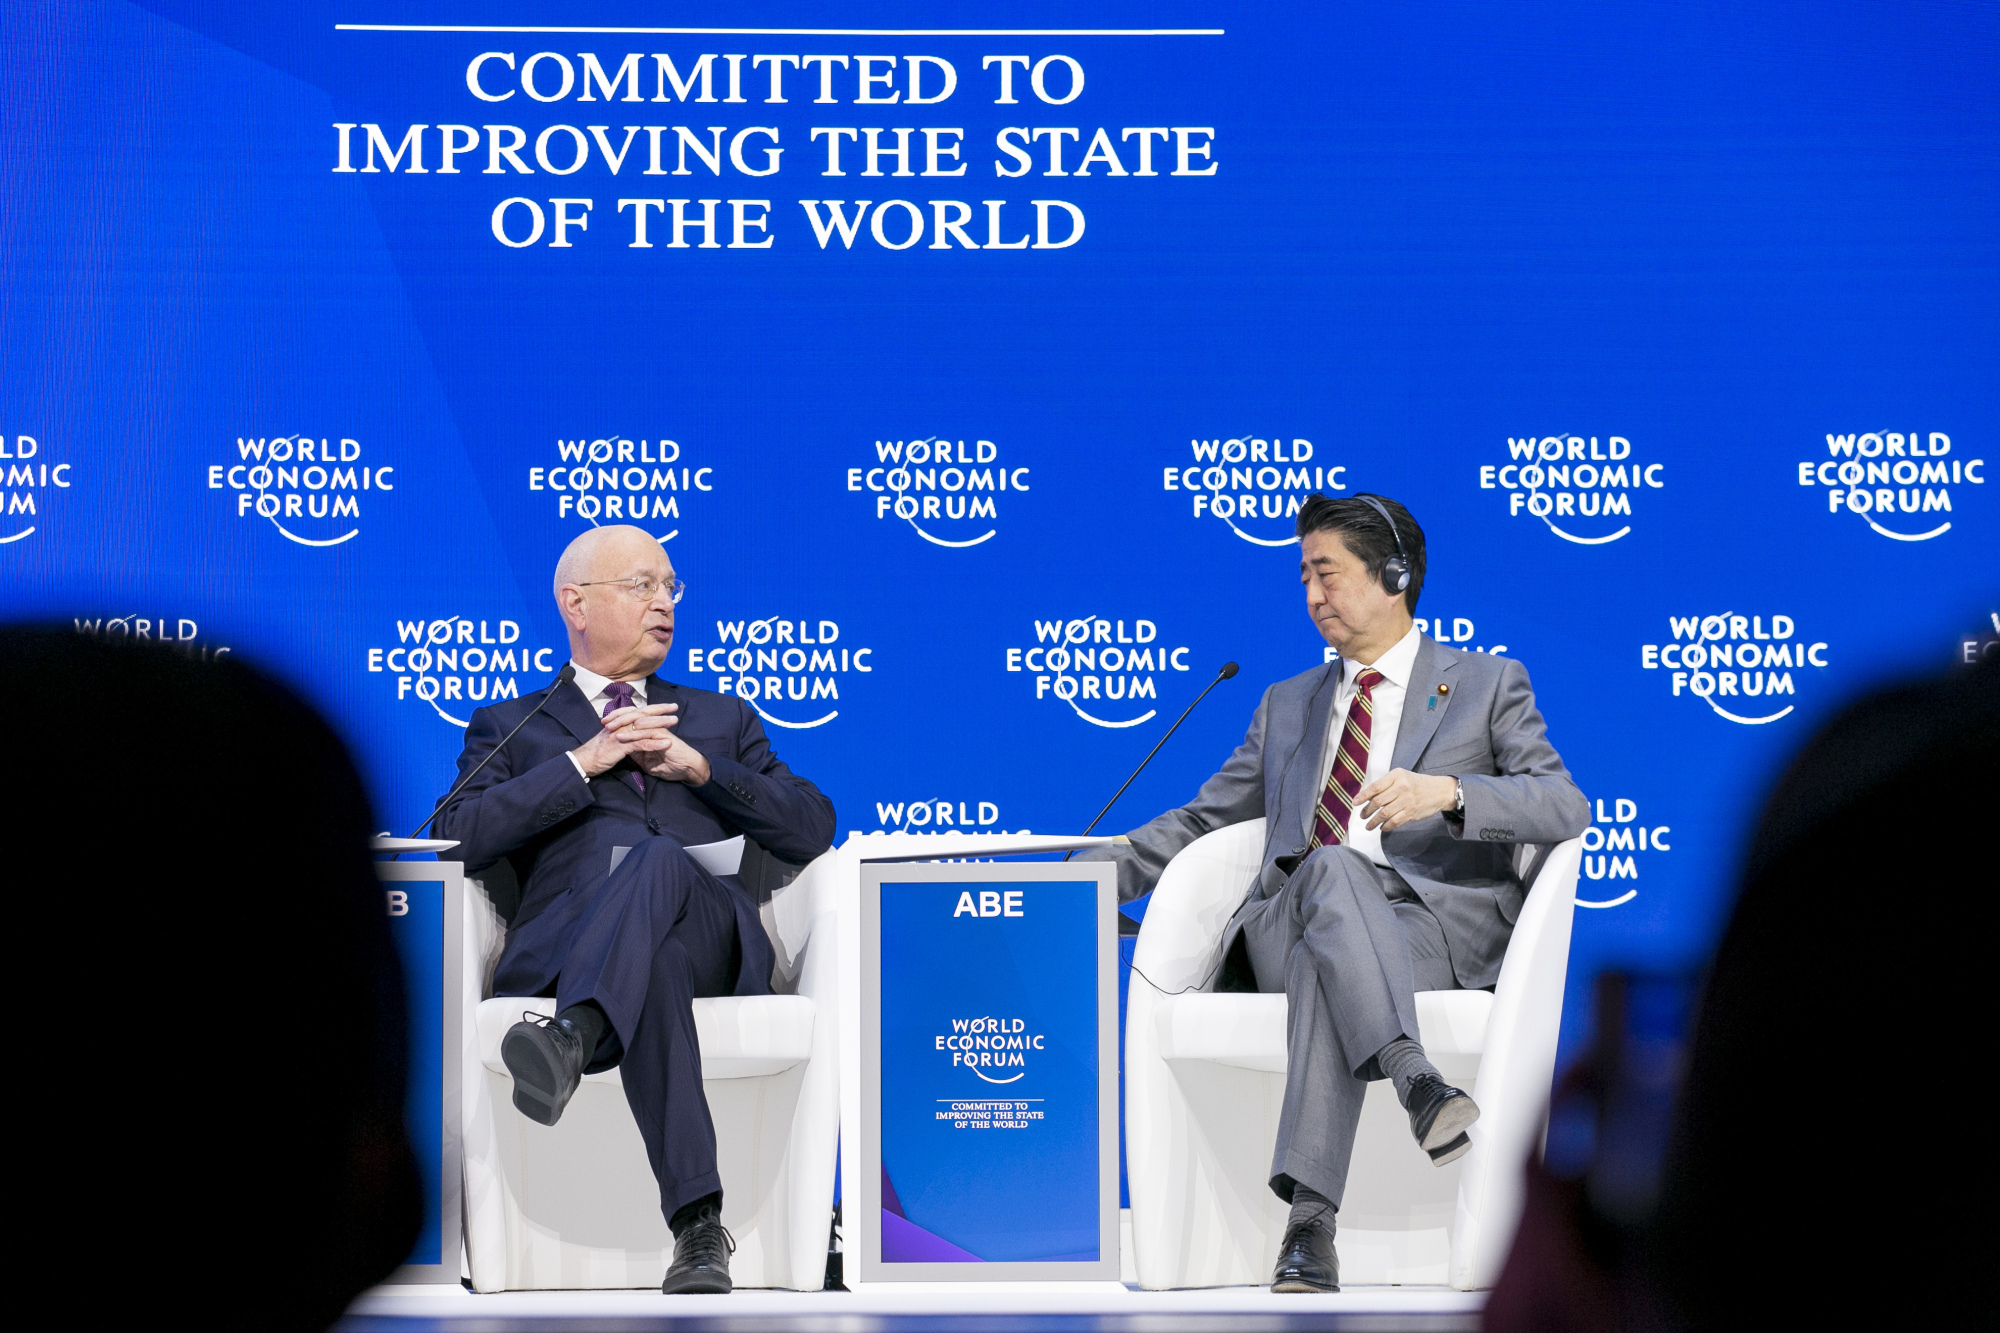 Klaus Schwab, founder and executive chairman of the World Economic Forum (WEF), speaks with Prime Minister Shinzo Abe during a session at the 2019 WEF Annual Meeting on Jan. 23, 2019.  WORLD ECONOMIC FORUM